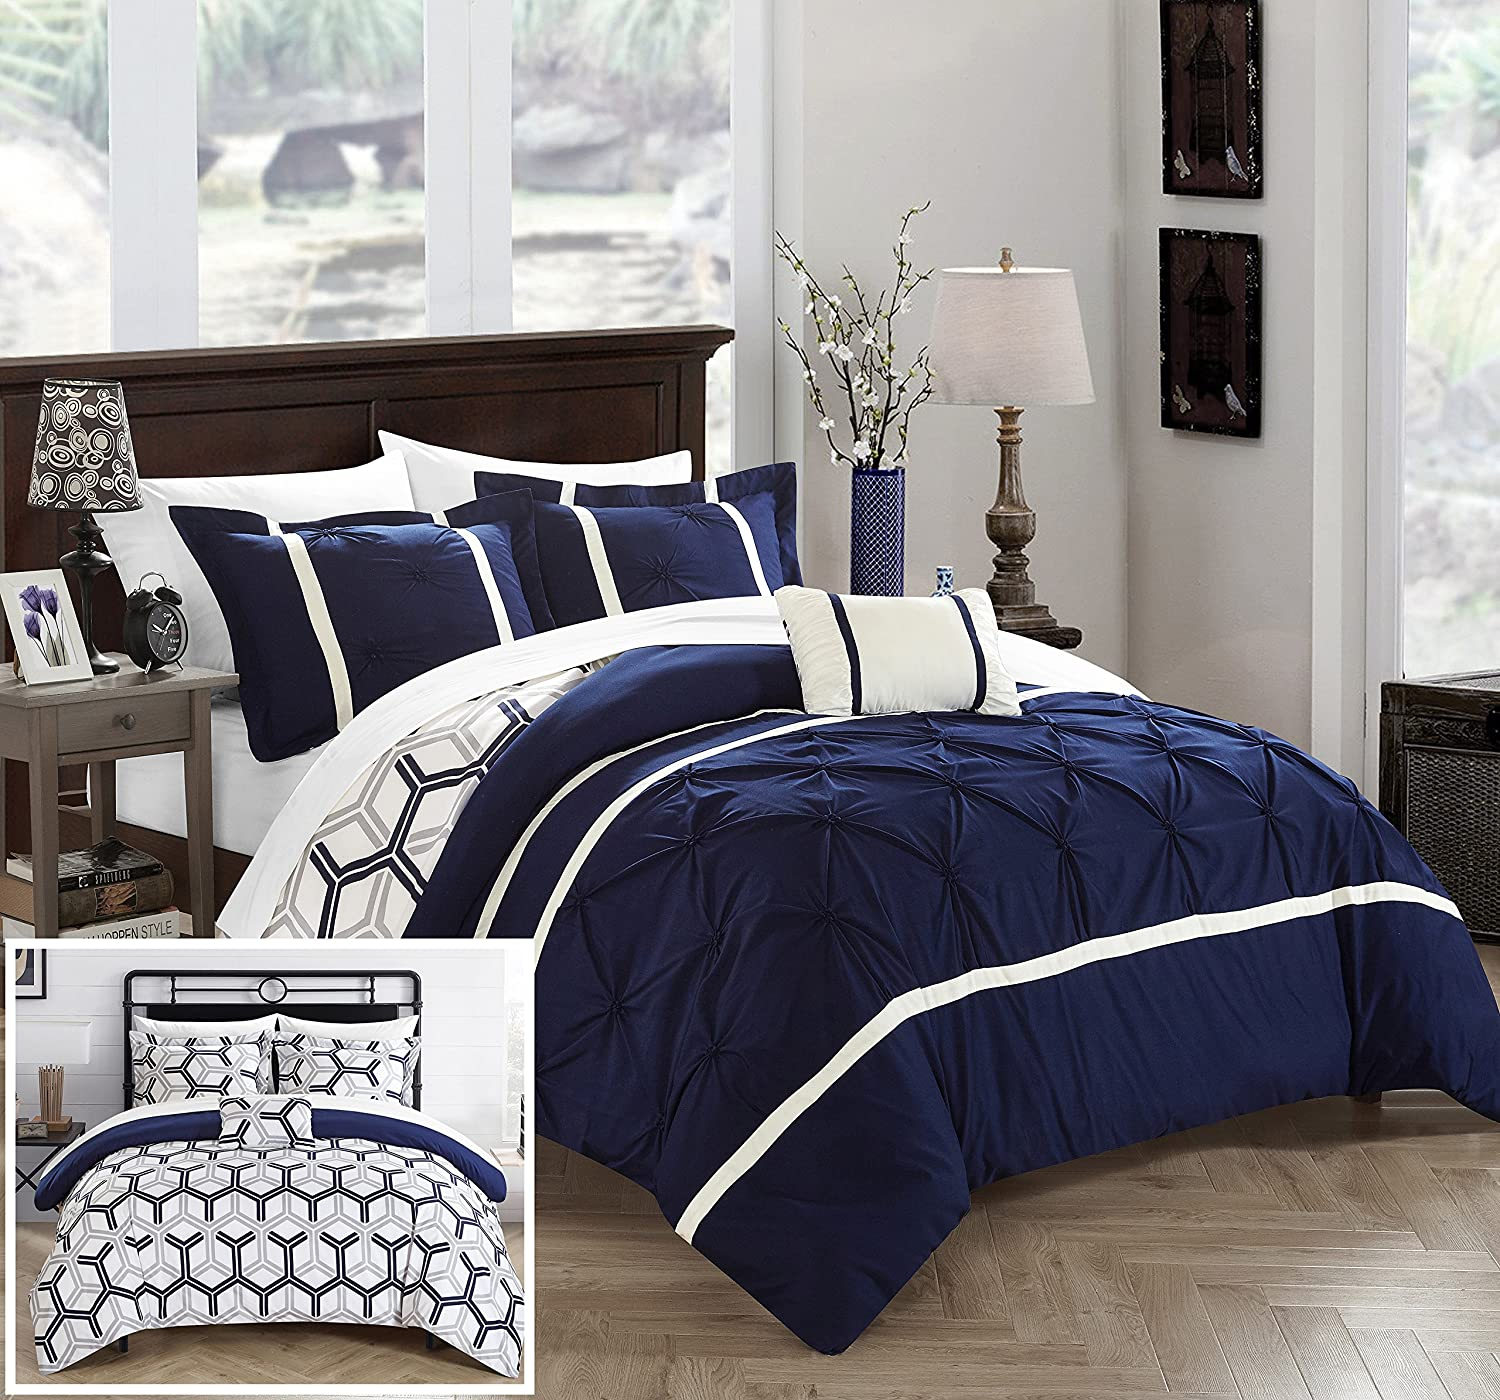 4 Piece Marcia Pinch Pleated Ruffled And Reversible Geometric Design Printed Comforter Set, Full/Queen, Navy